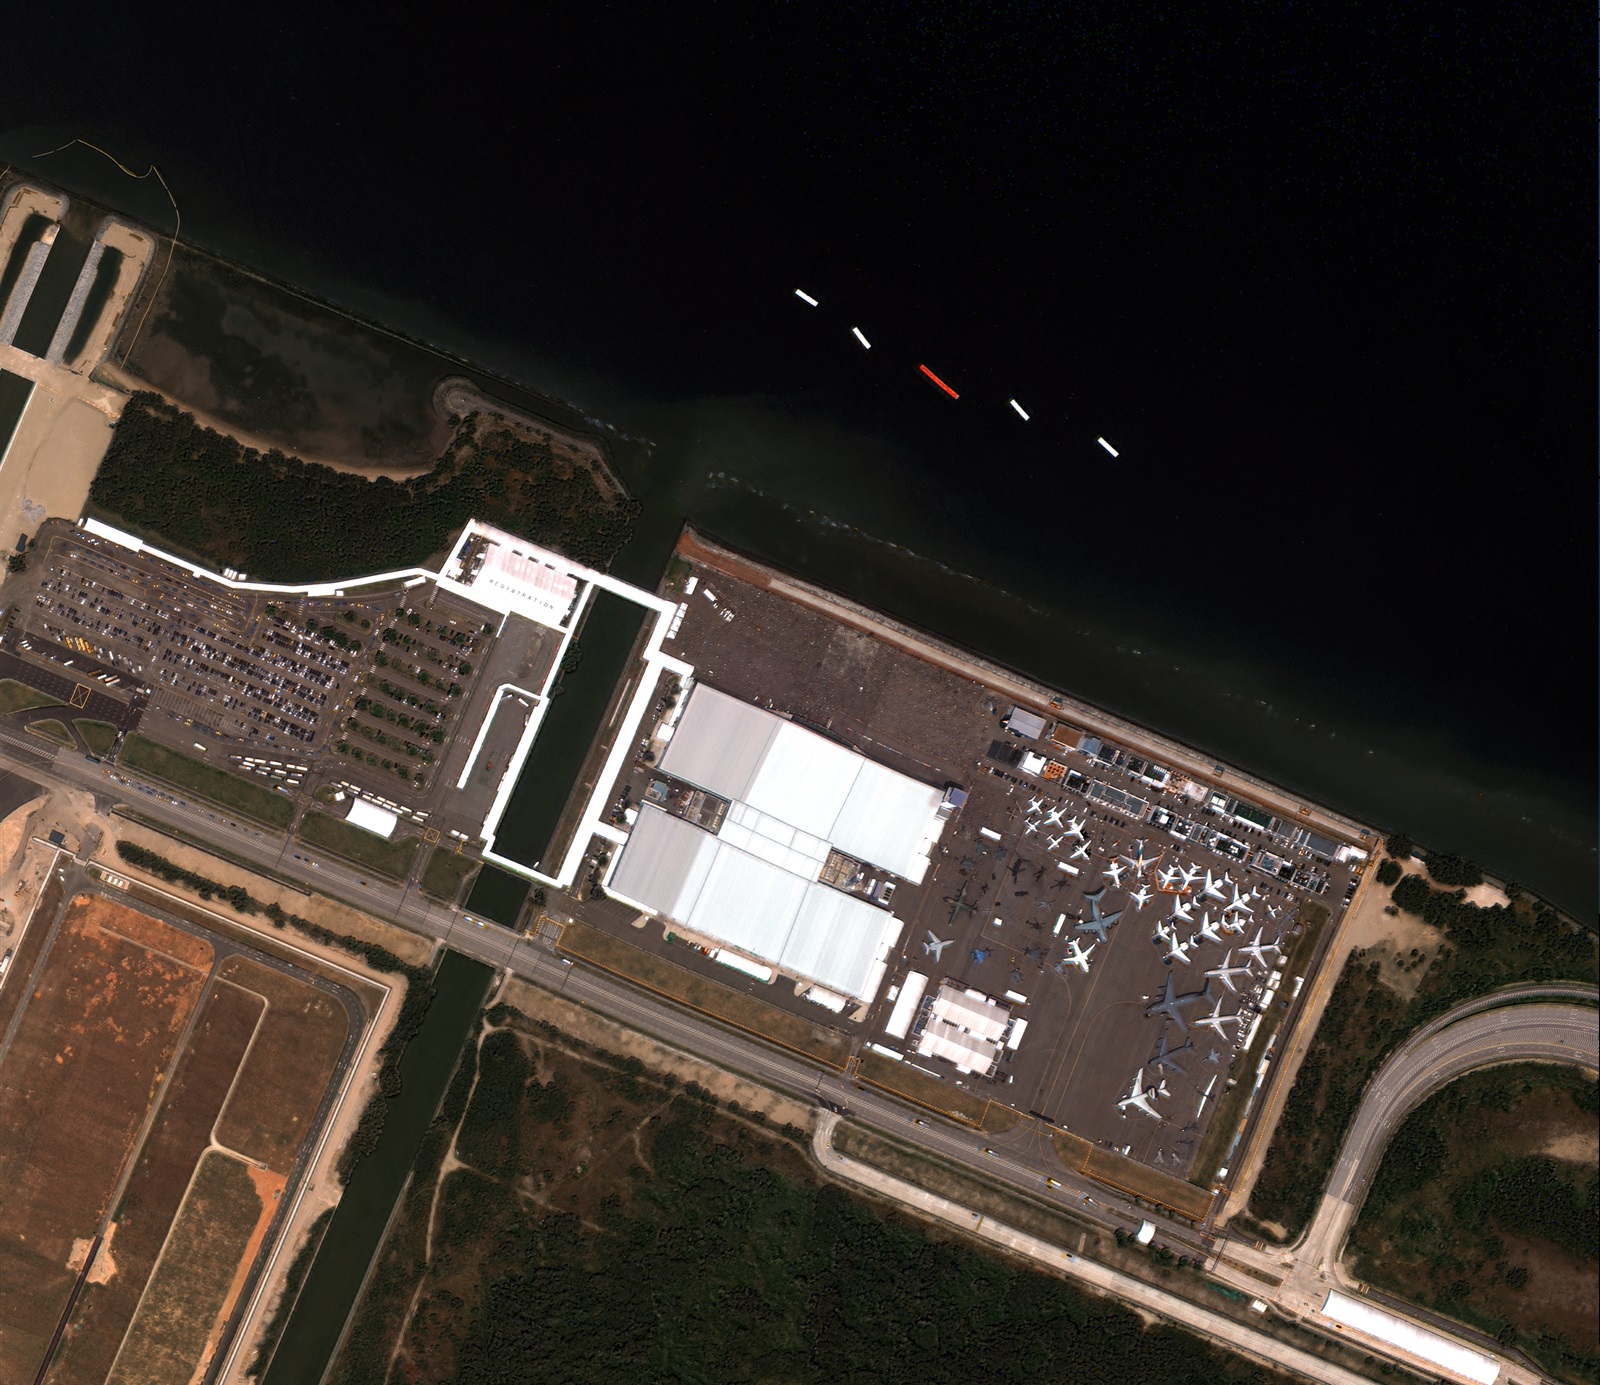 LiveEO satellite view of an airport